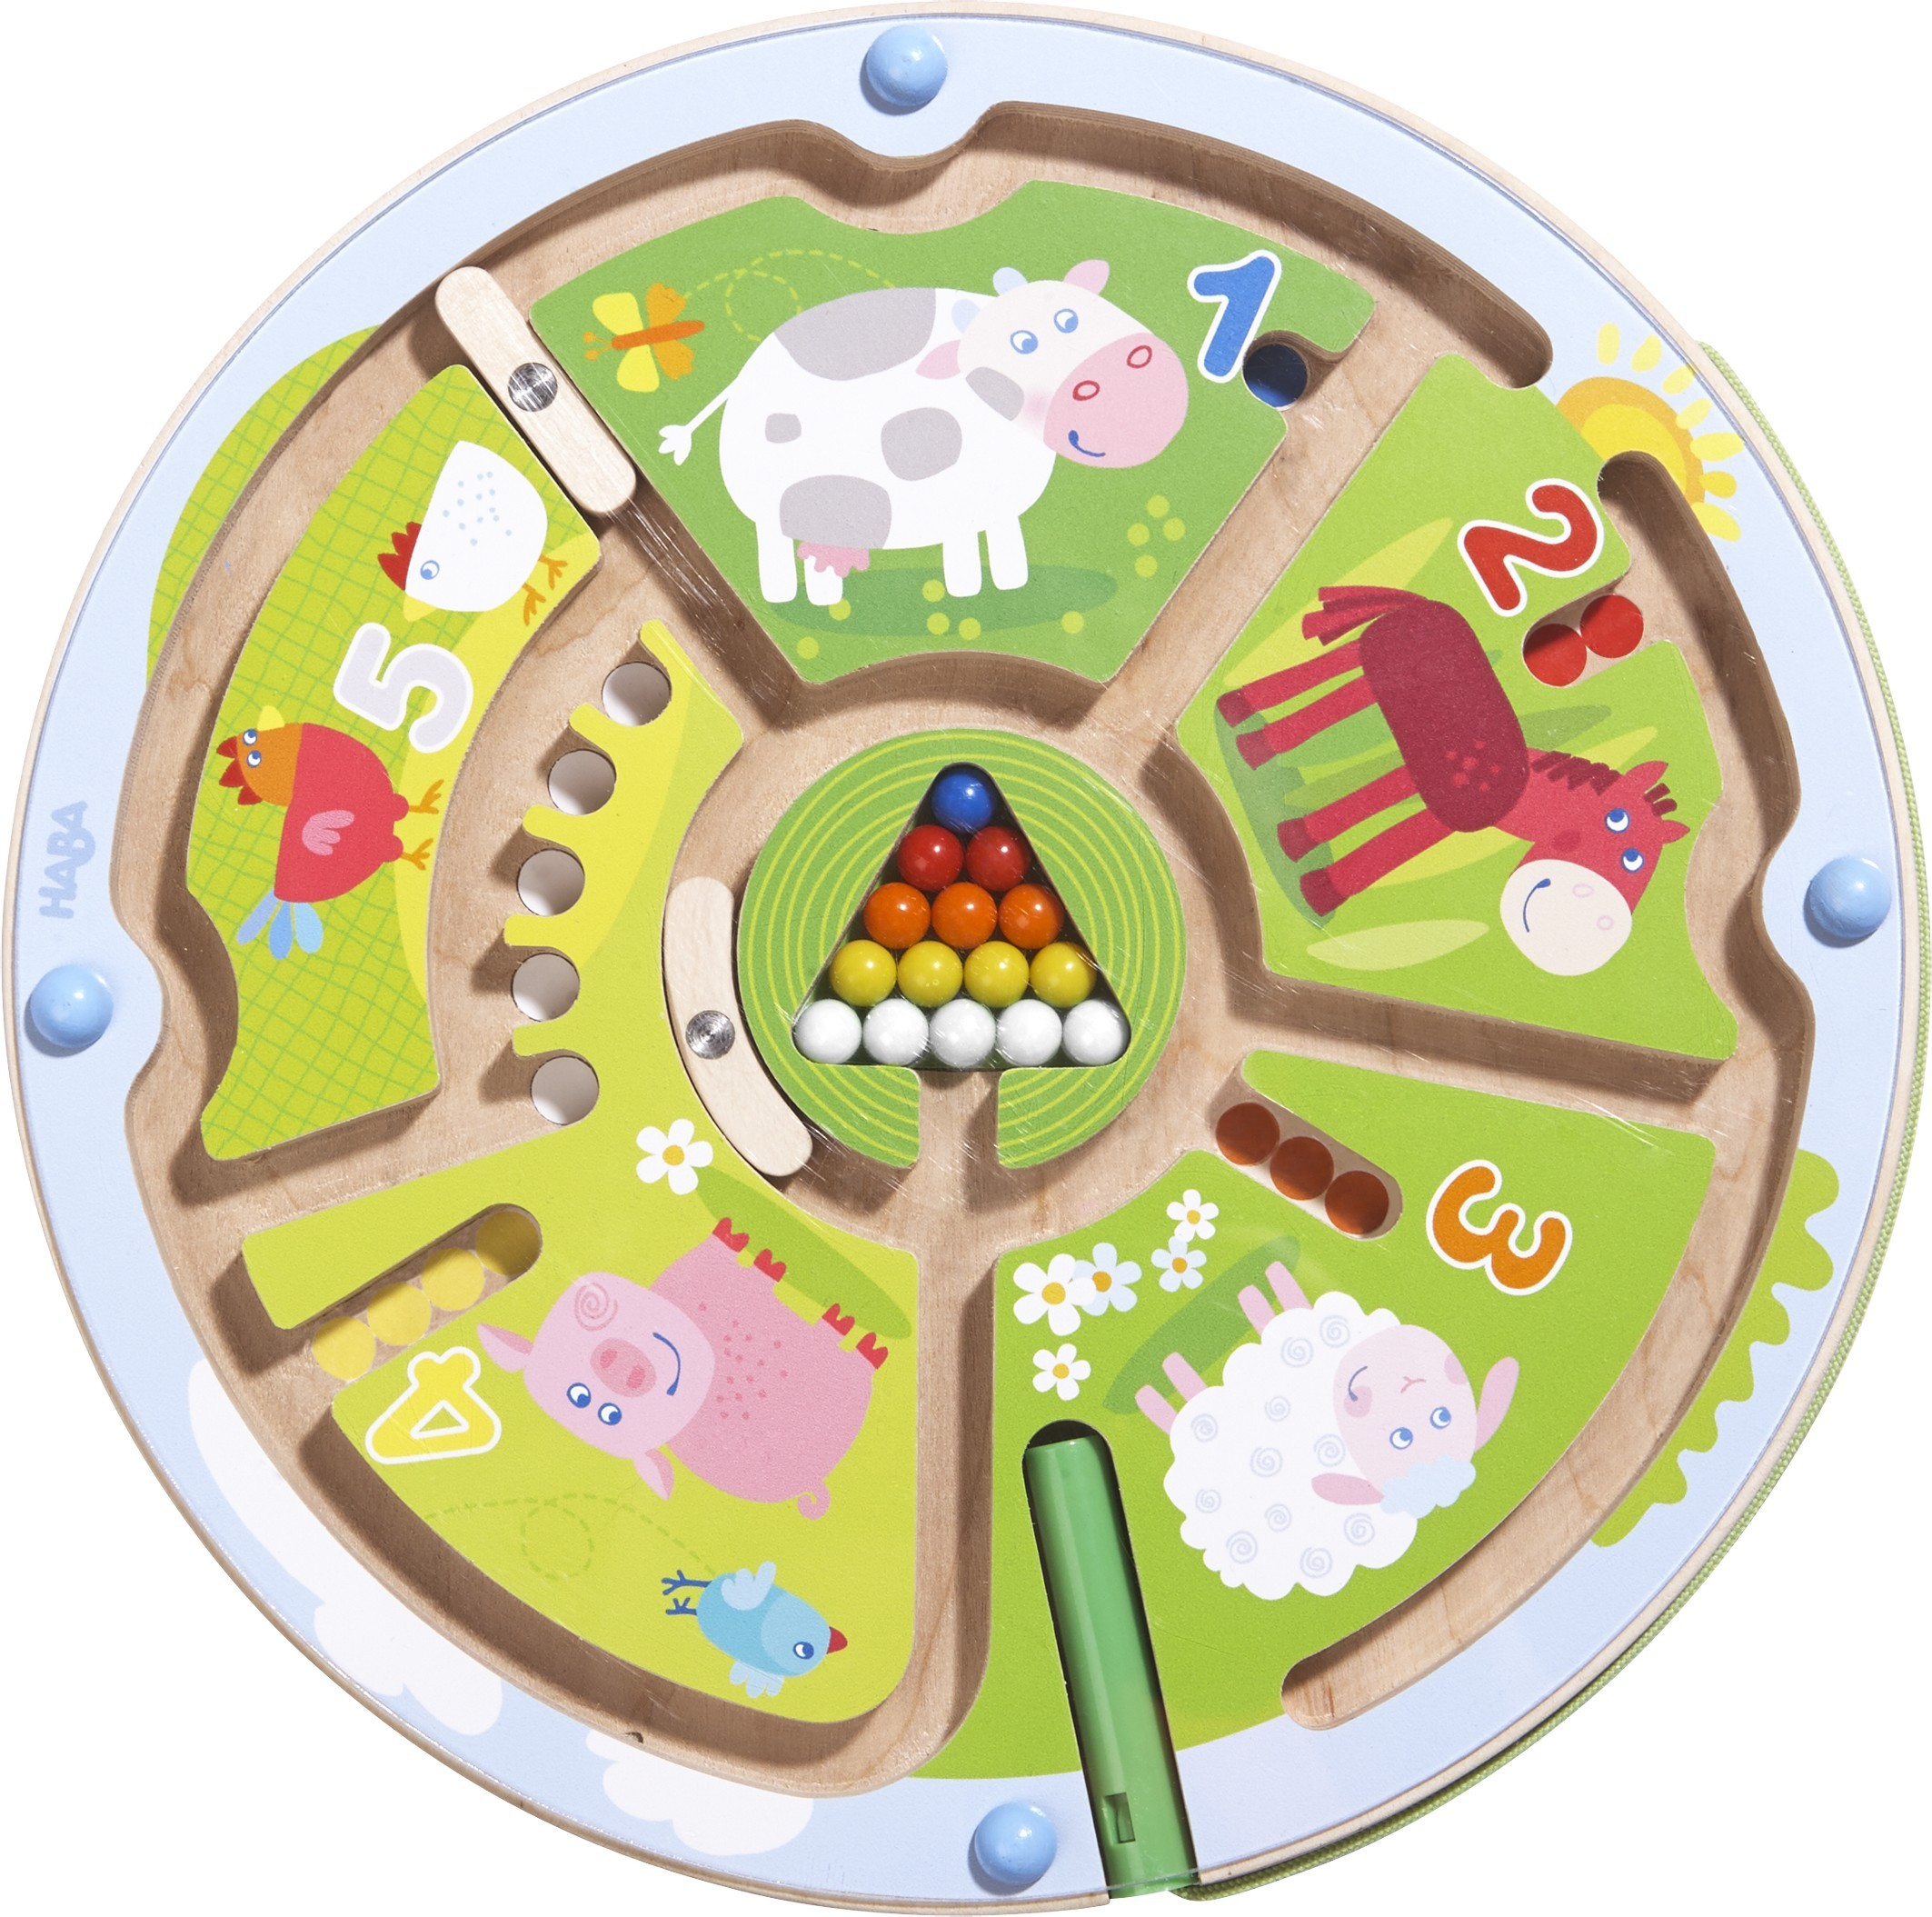 HABA Number Maze Magnetic Game - STEM Toy Encourages Color Recognition, Fine Motor & Counting to 5